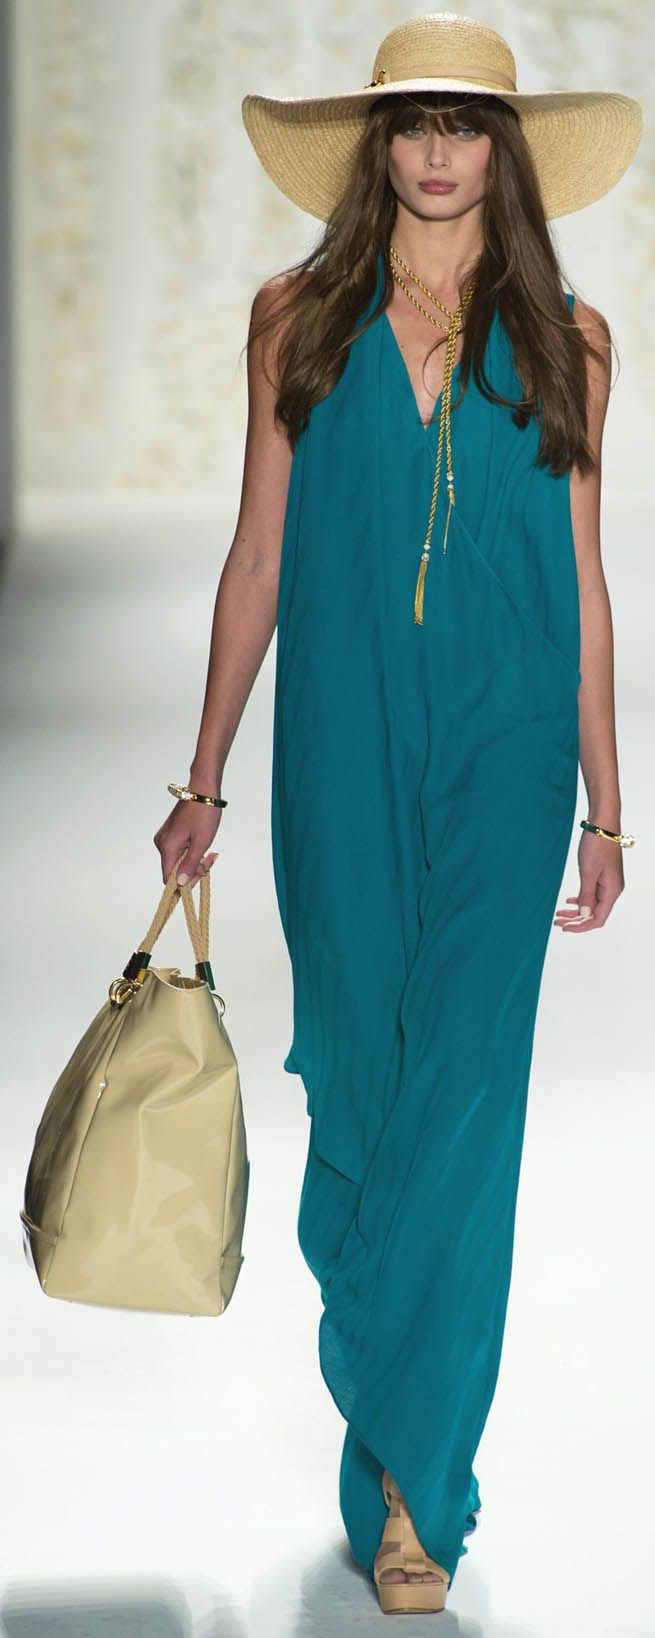 Rachel Zoe - lovely long maxi dress and big straw hat with long gold necklace and handbag. love the whole look!